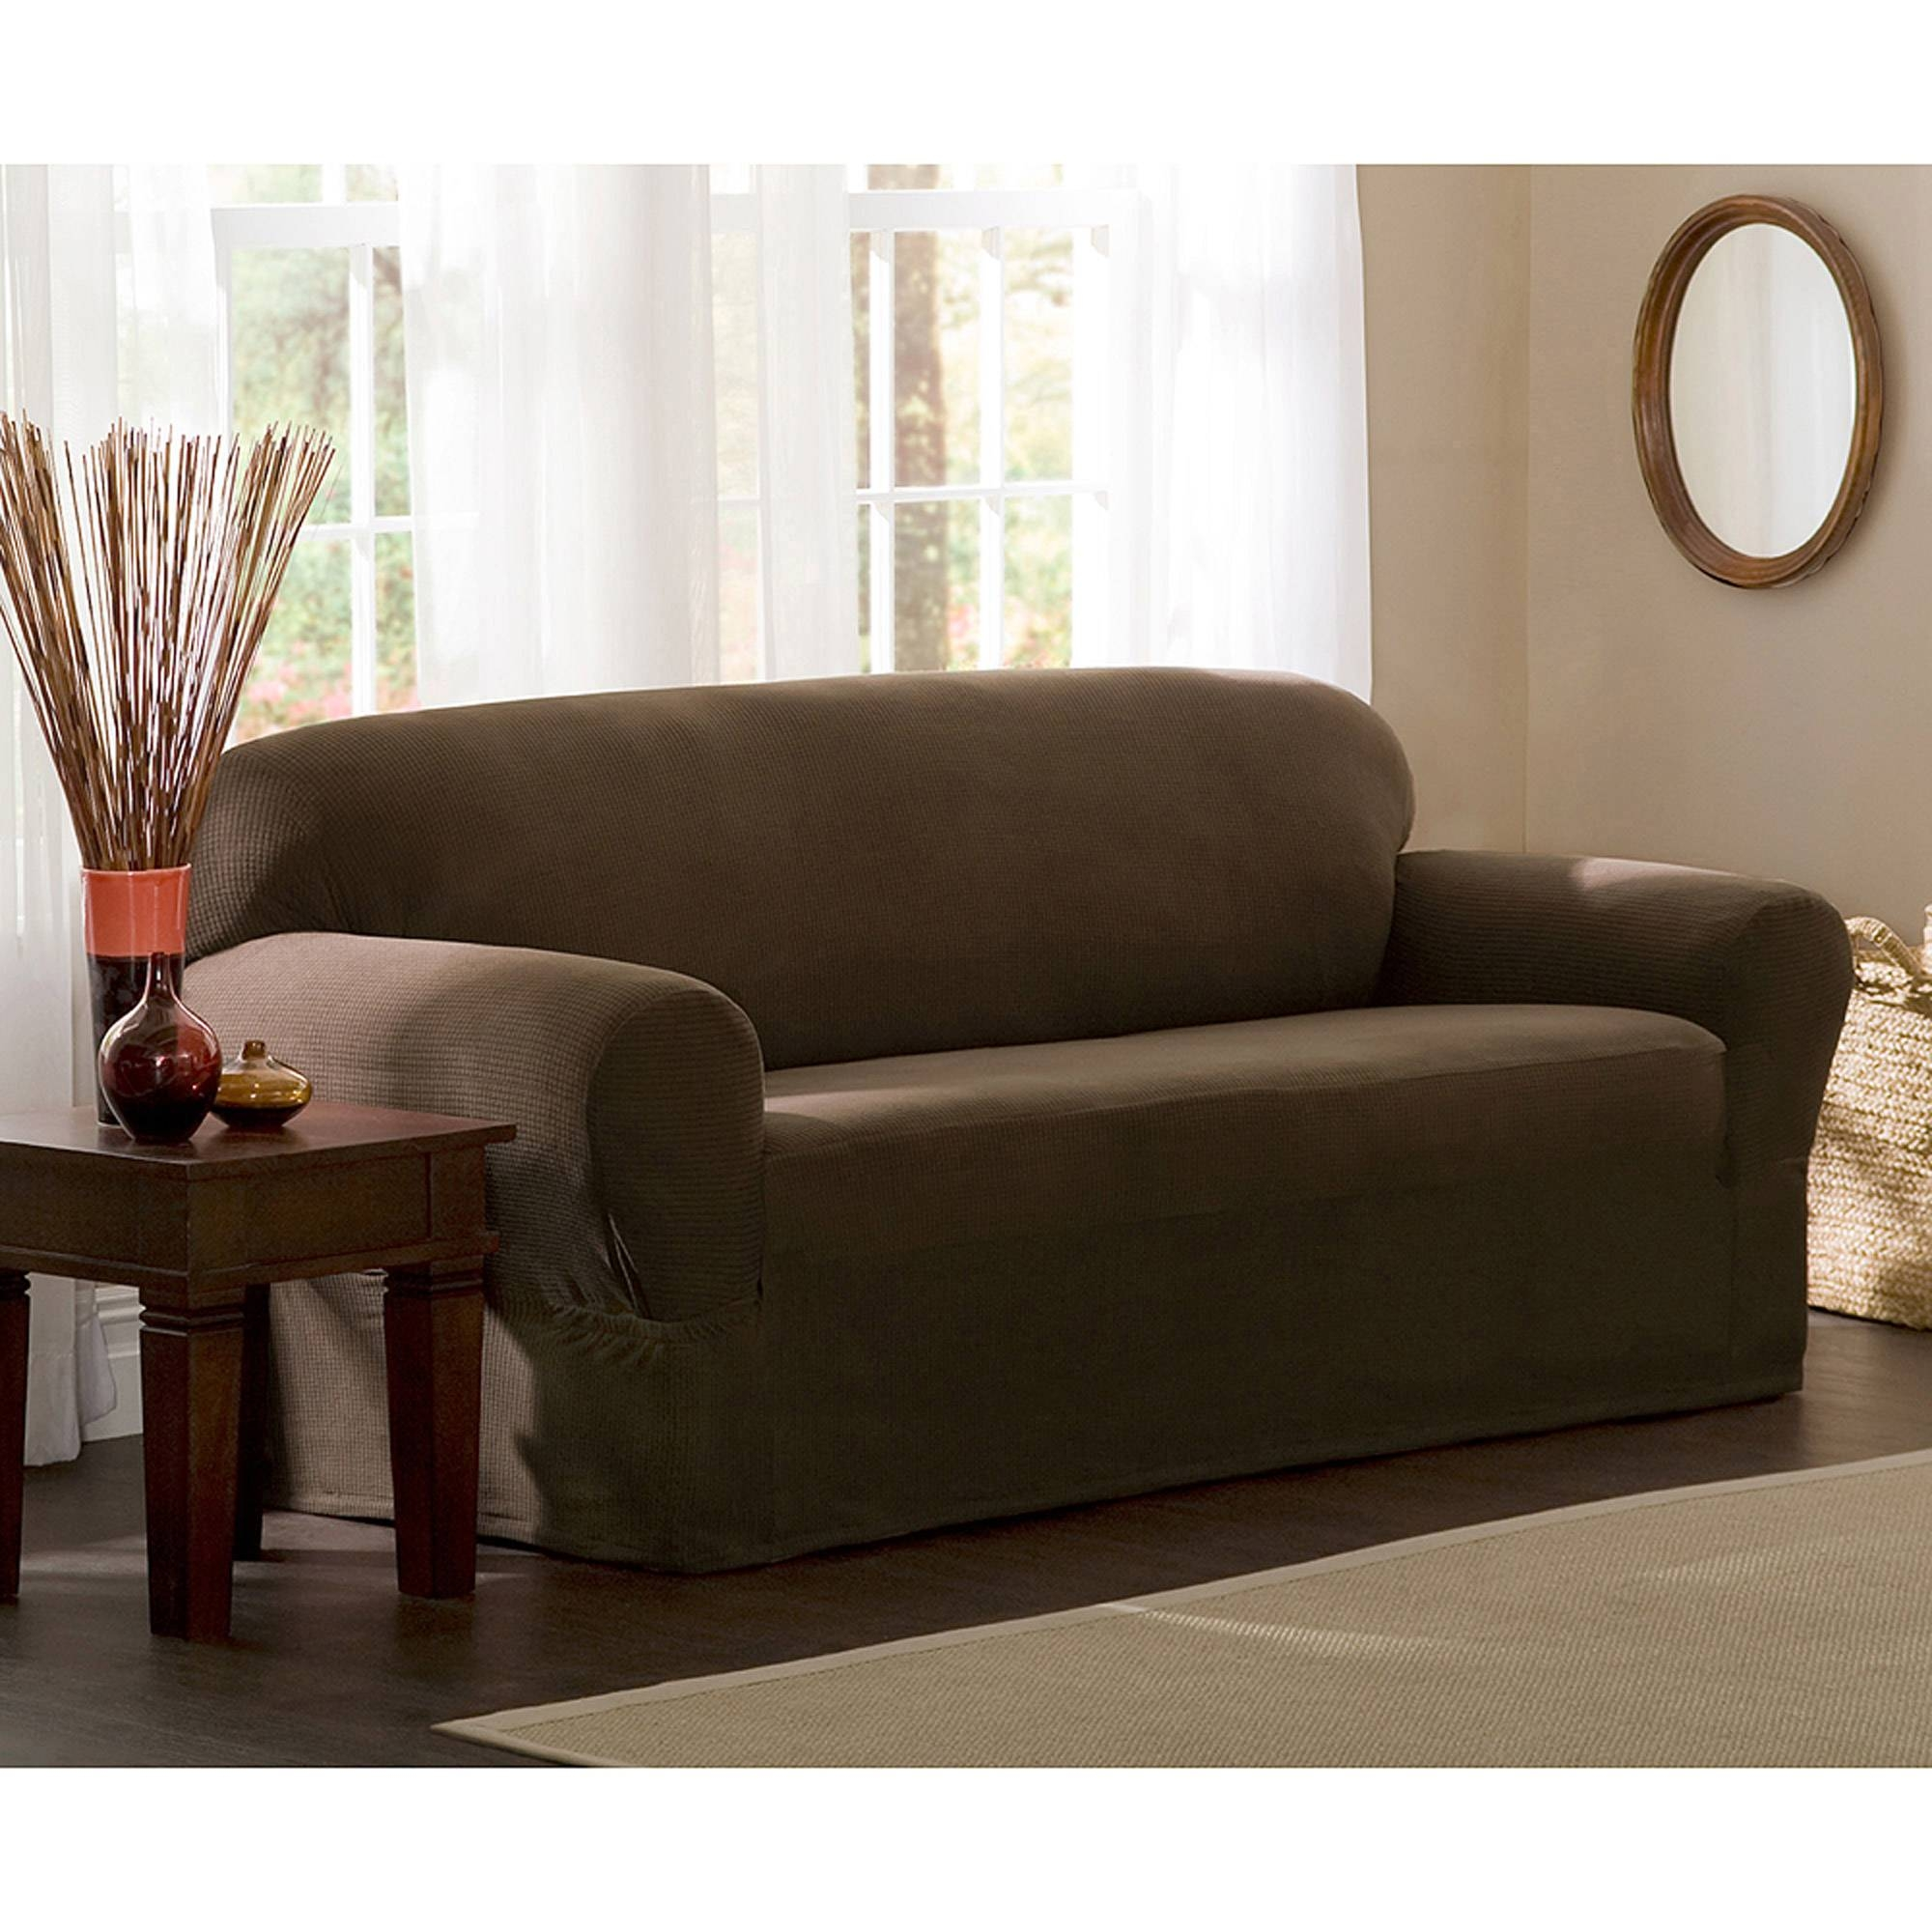 Tips: Soft T Cushion Chair Slipcovers For Elegant Interior pertaining to Loveseat Slipcovers T-Cushion (Image 14 of 15)